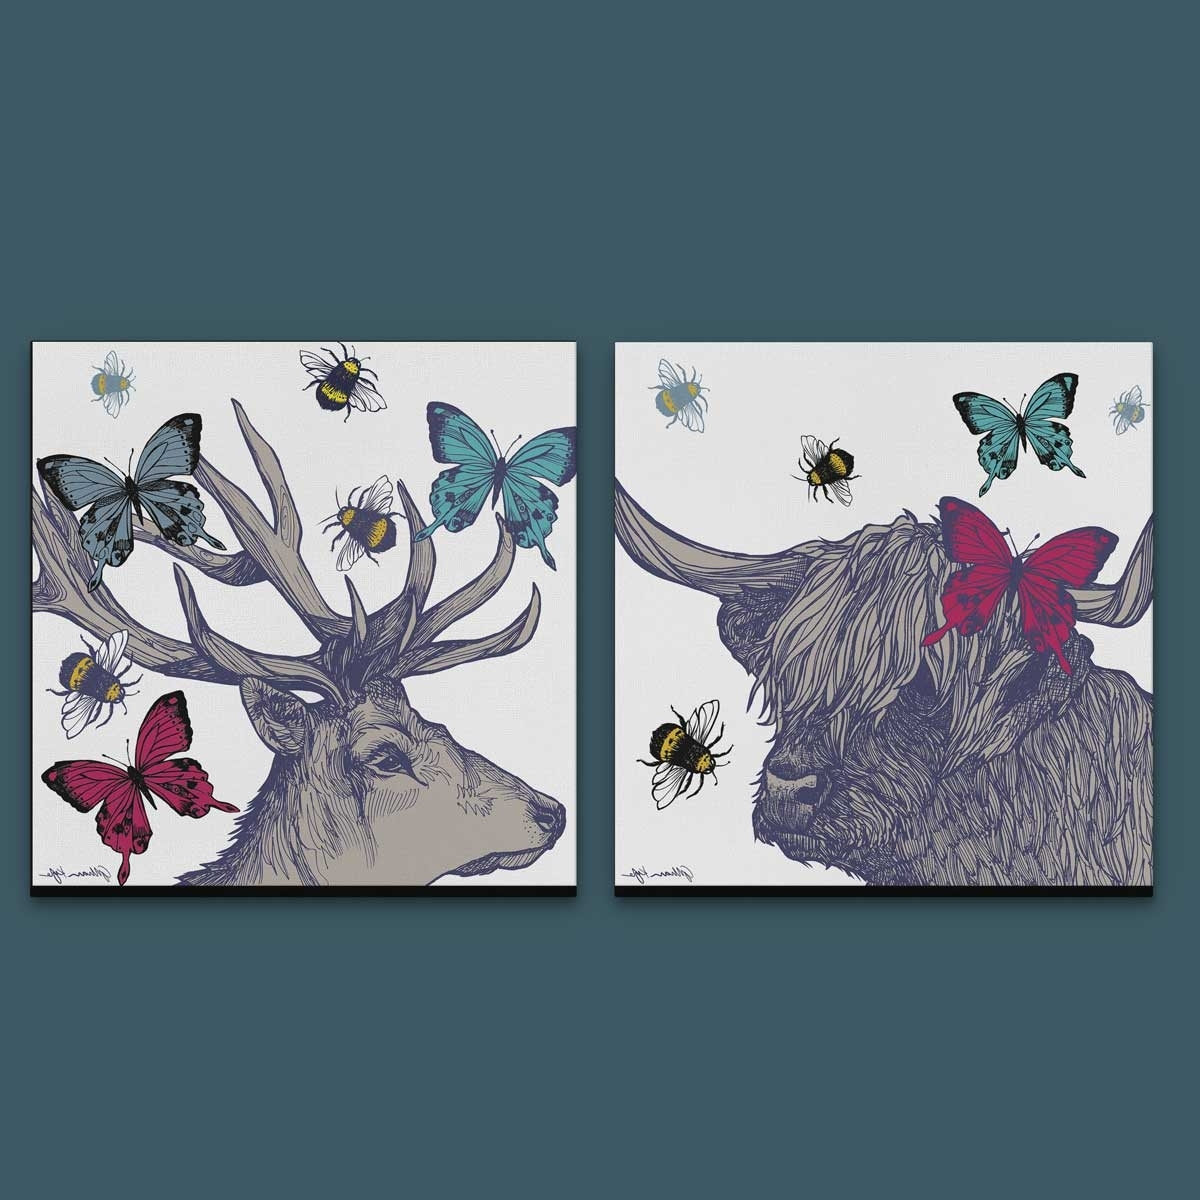 Fashionable Gillian Kyle Scottish Wall Art Stag And Lola Set Of Two Canvas Prints Regarding Canvas Wall Art Pairs (View 3 of 15)